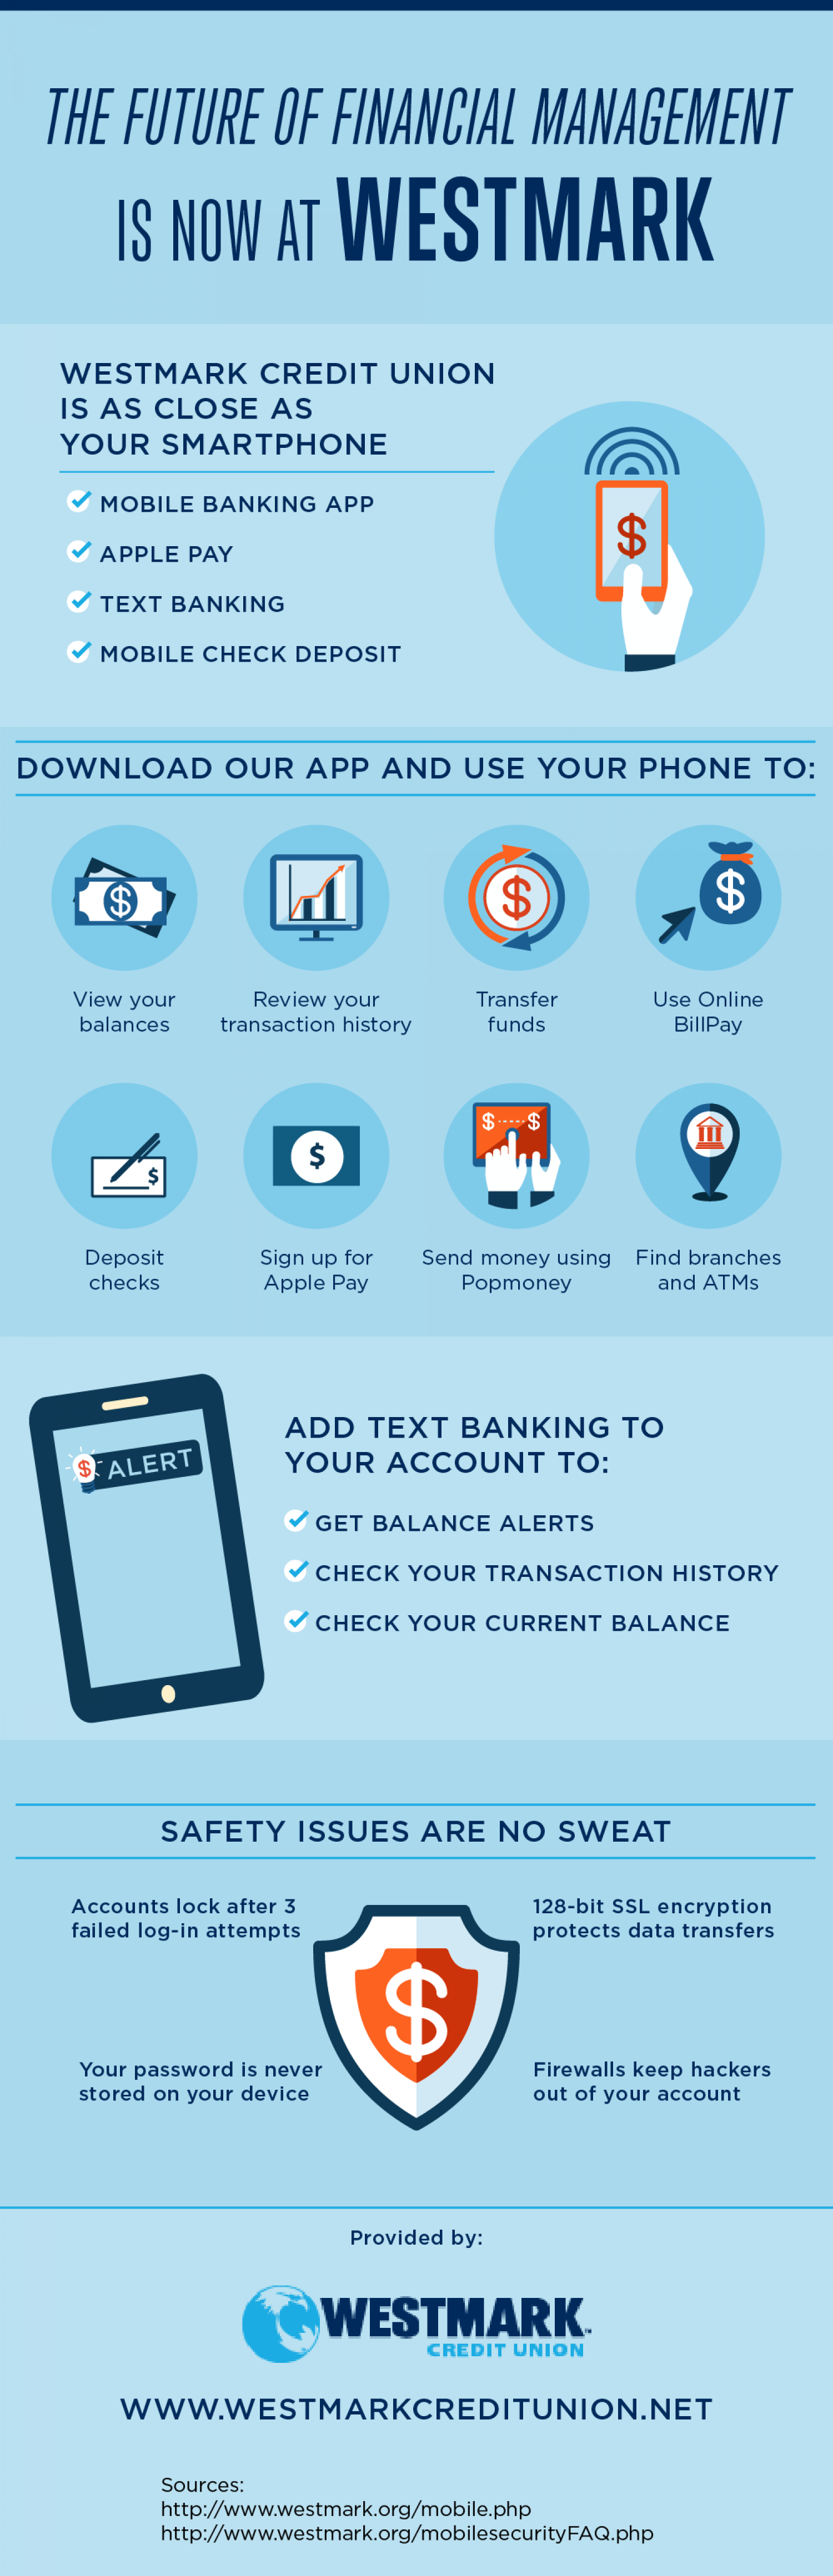 The Future of Financial Management Is Now at Westmark Infographic